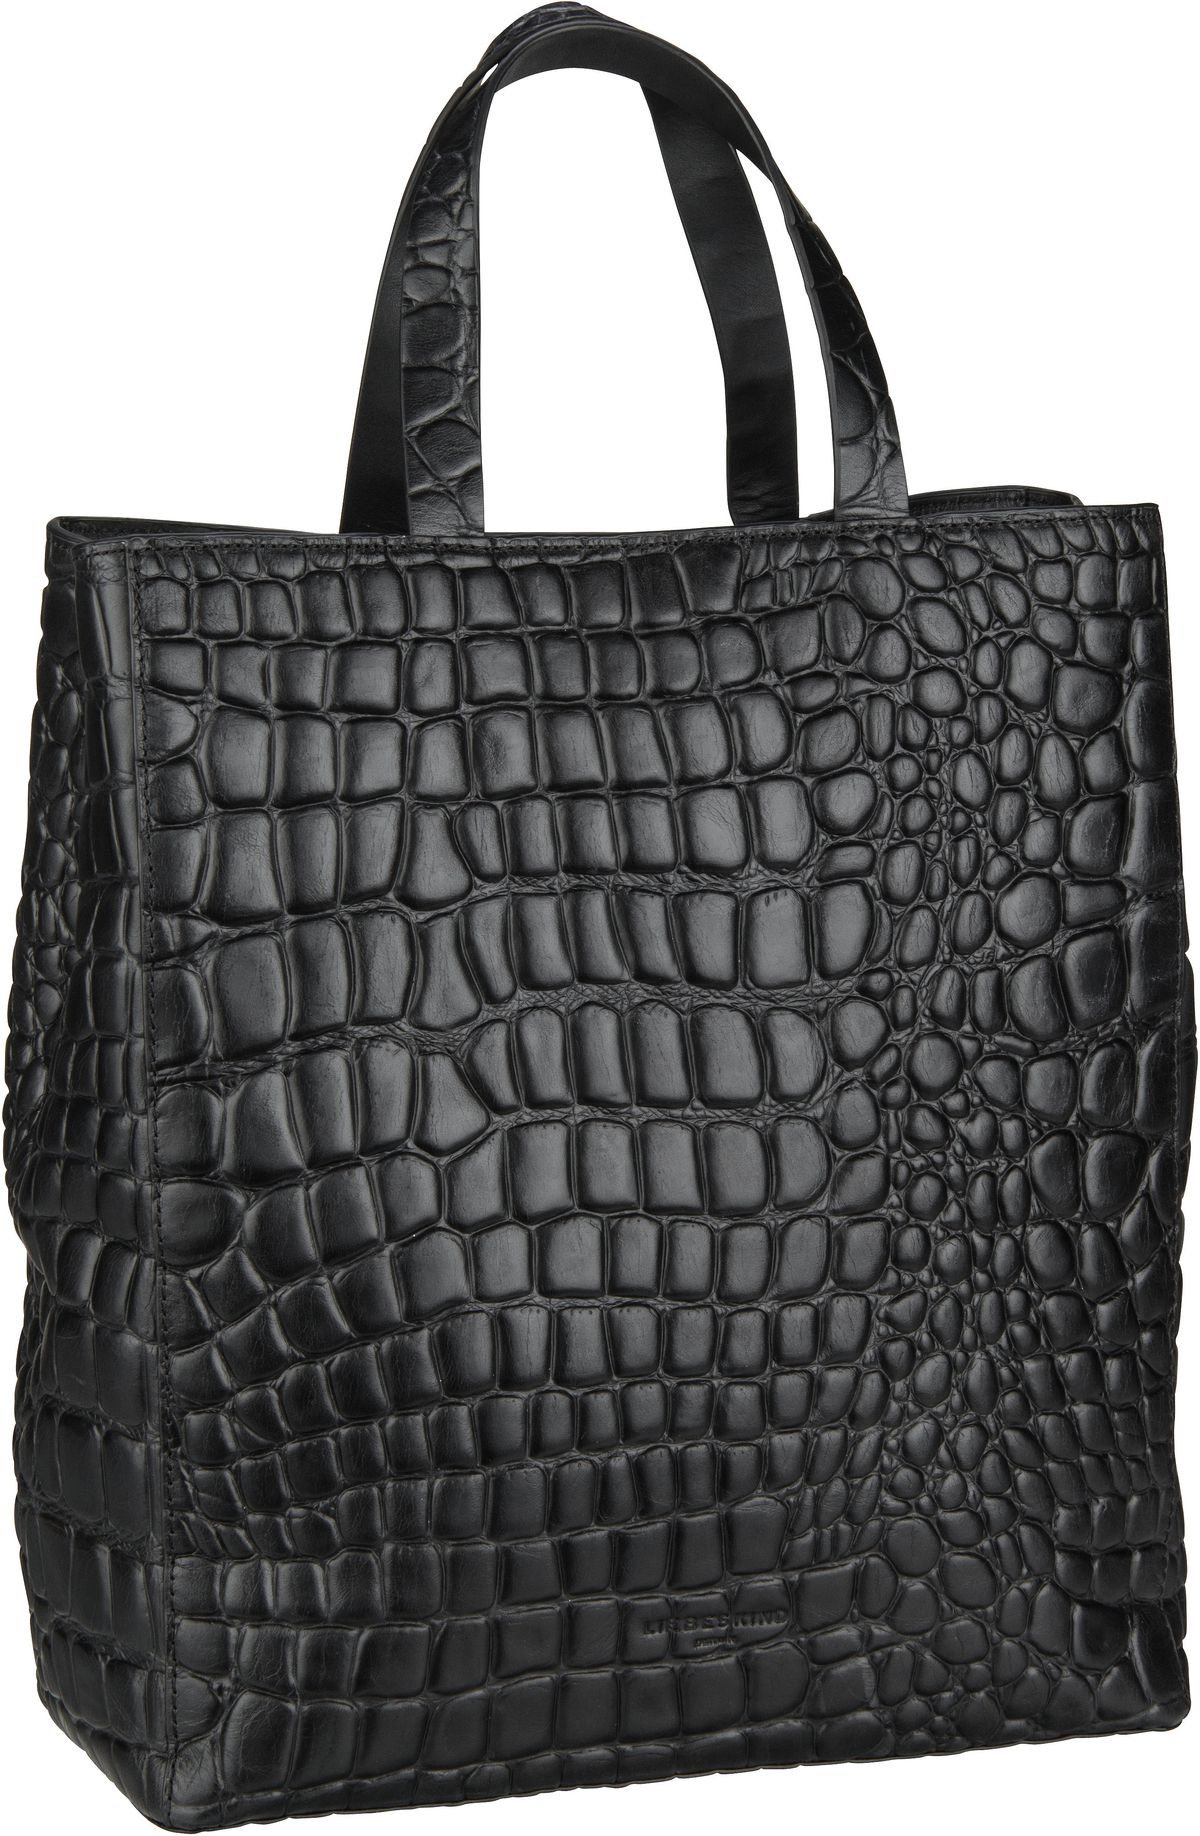 Berlin Shopper Paper Bag Croco Tote M Black